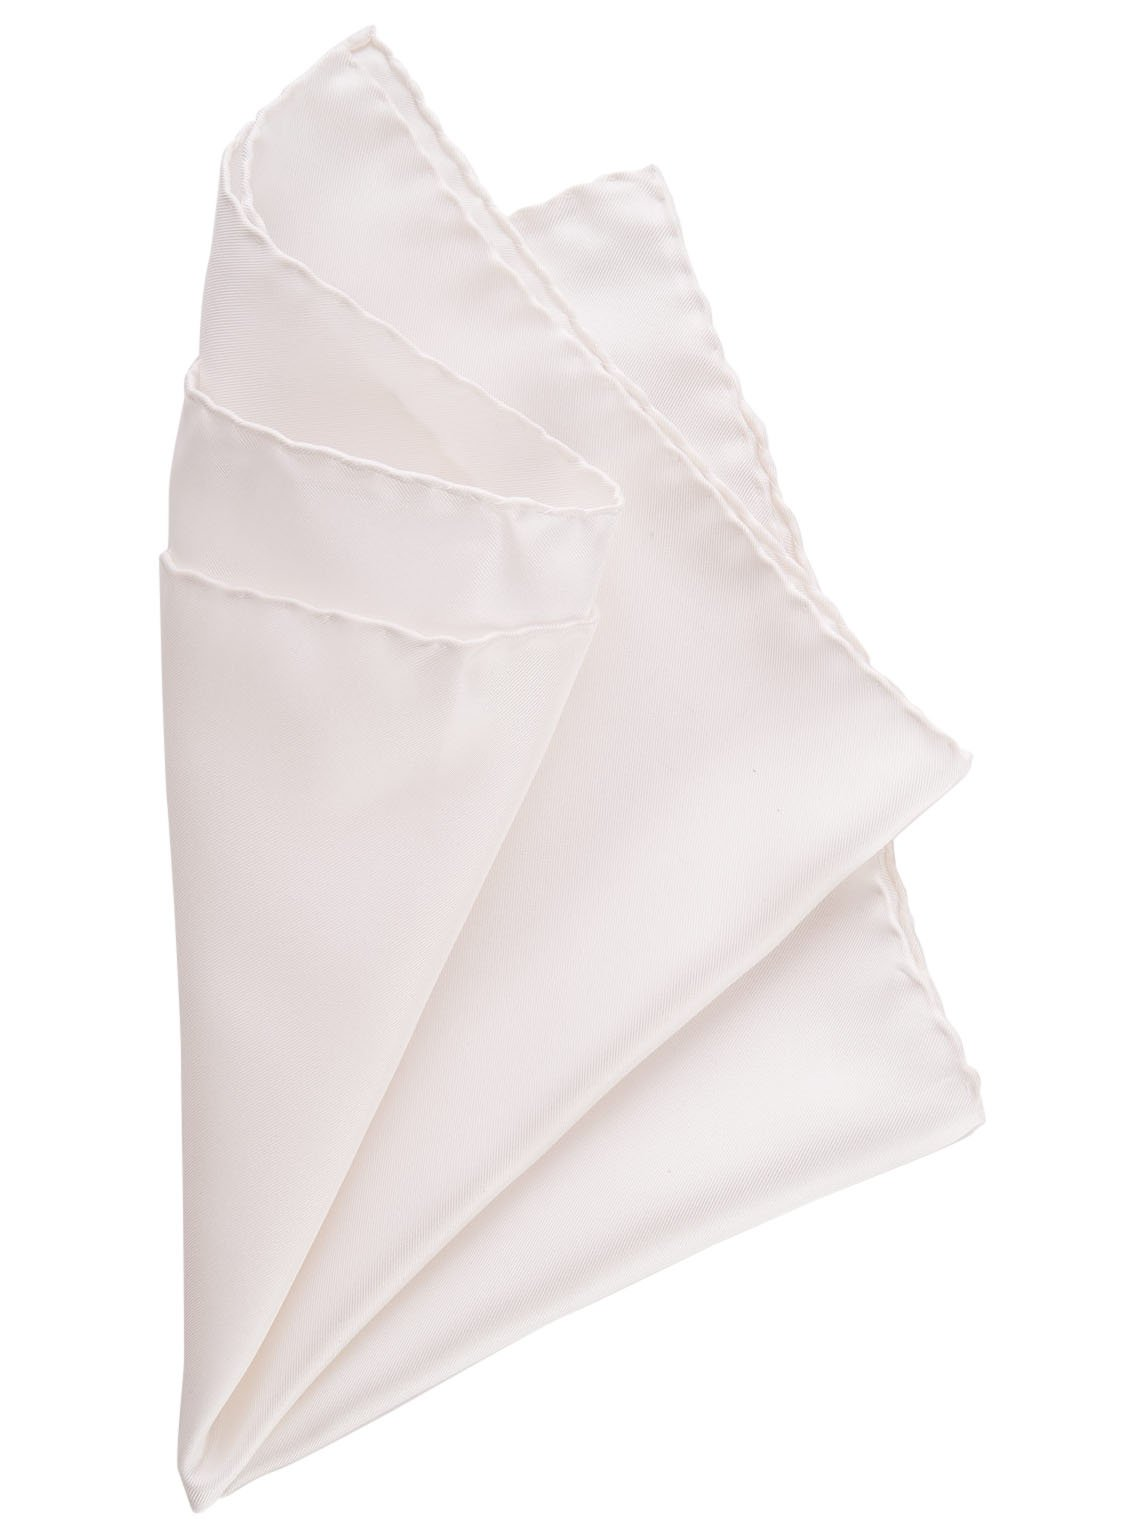 Elizabetta Men's Large 16'' Italian Silk Pocket Square, Solid White Hand Sewn Hems